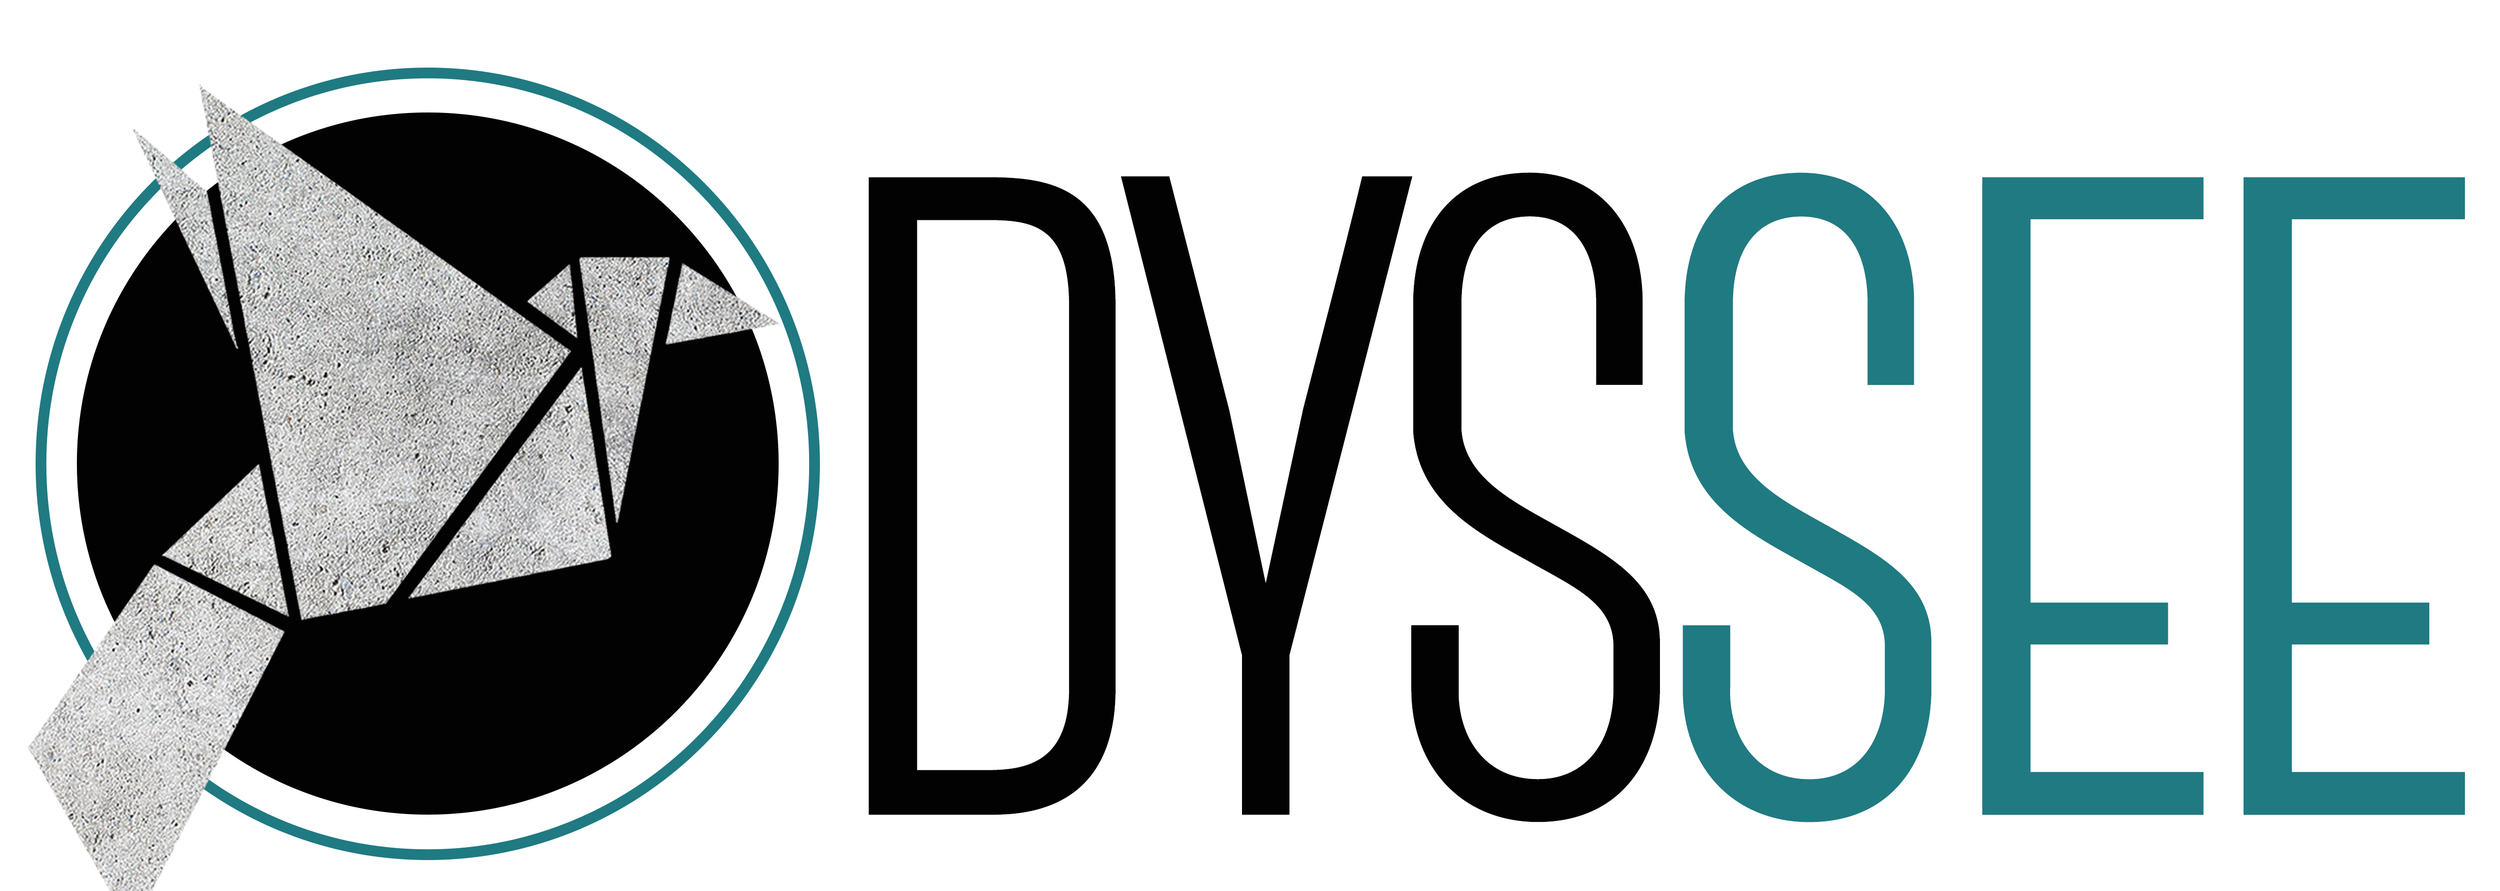 ODYSSEE_logo.png